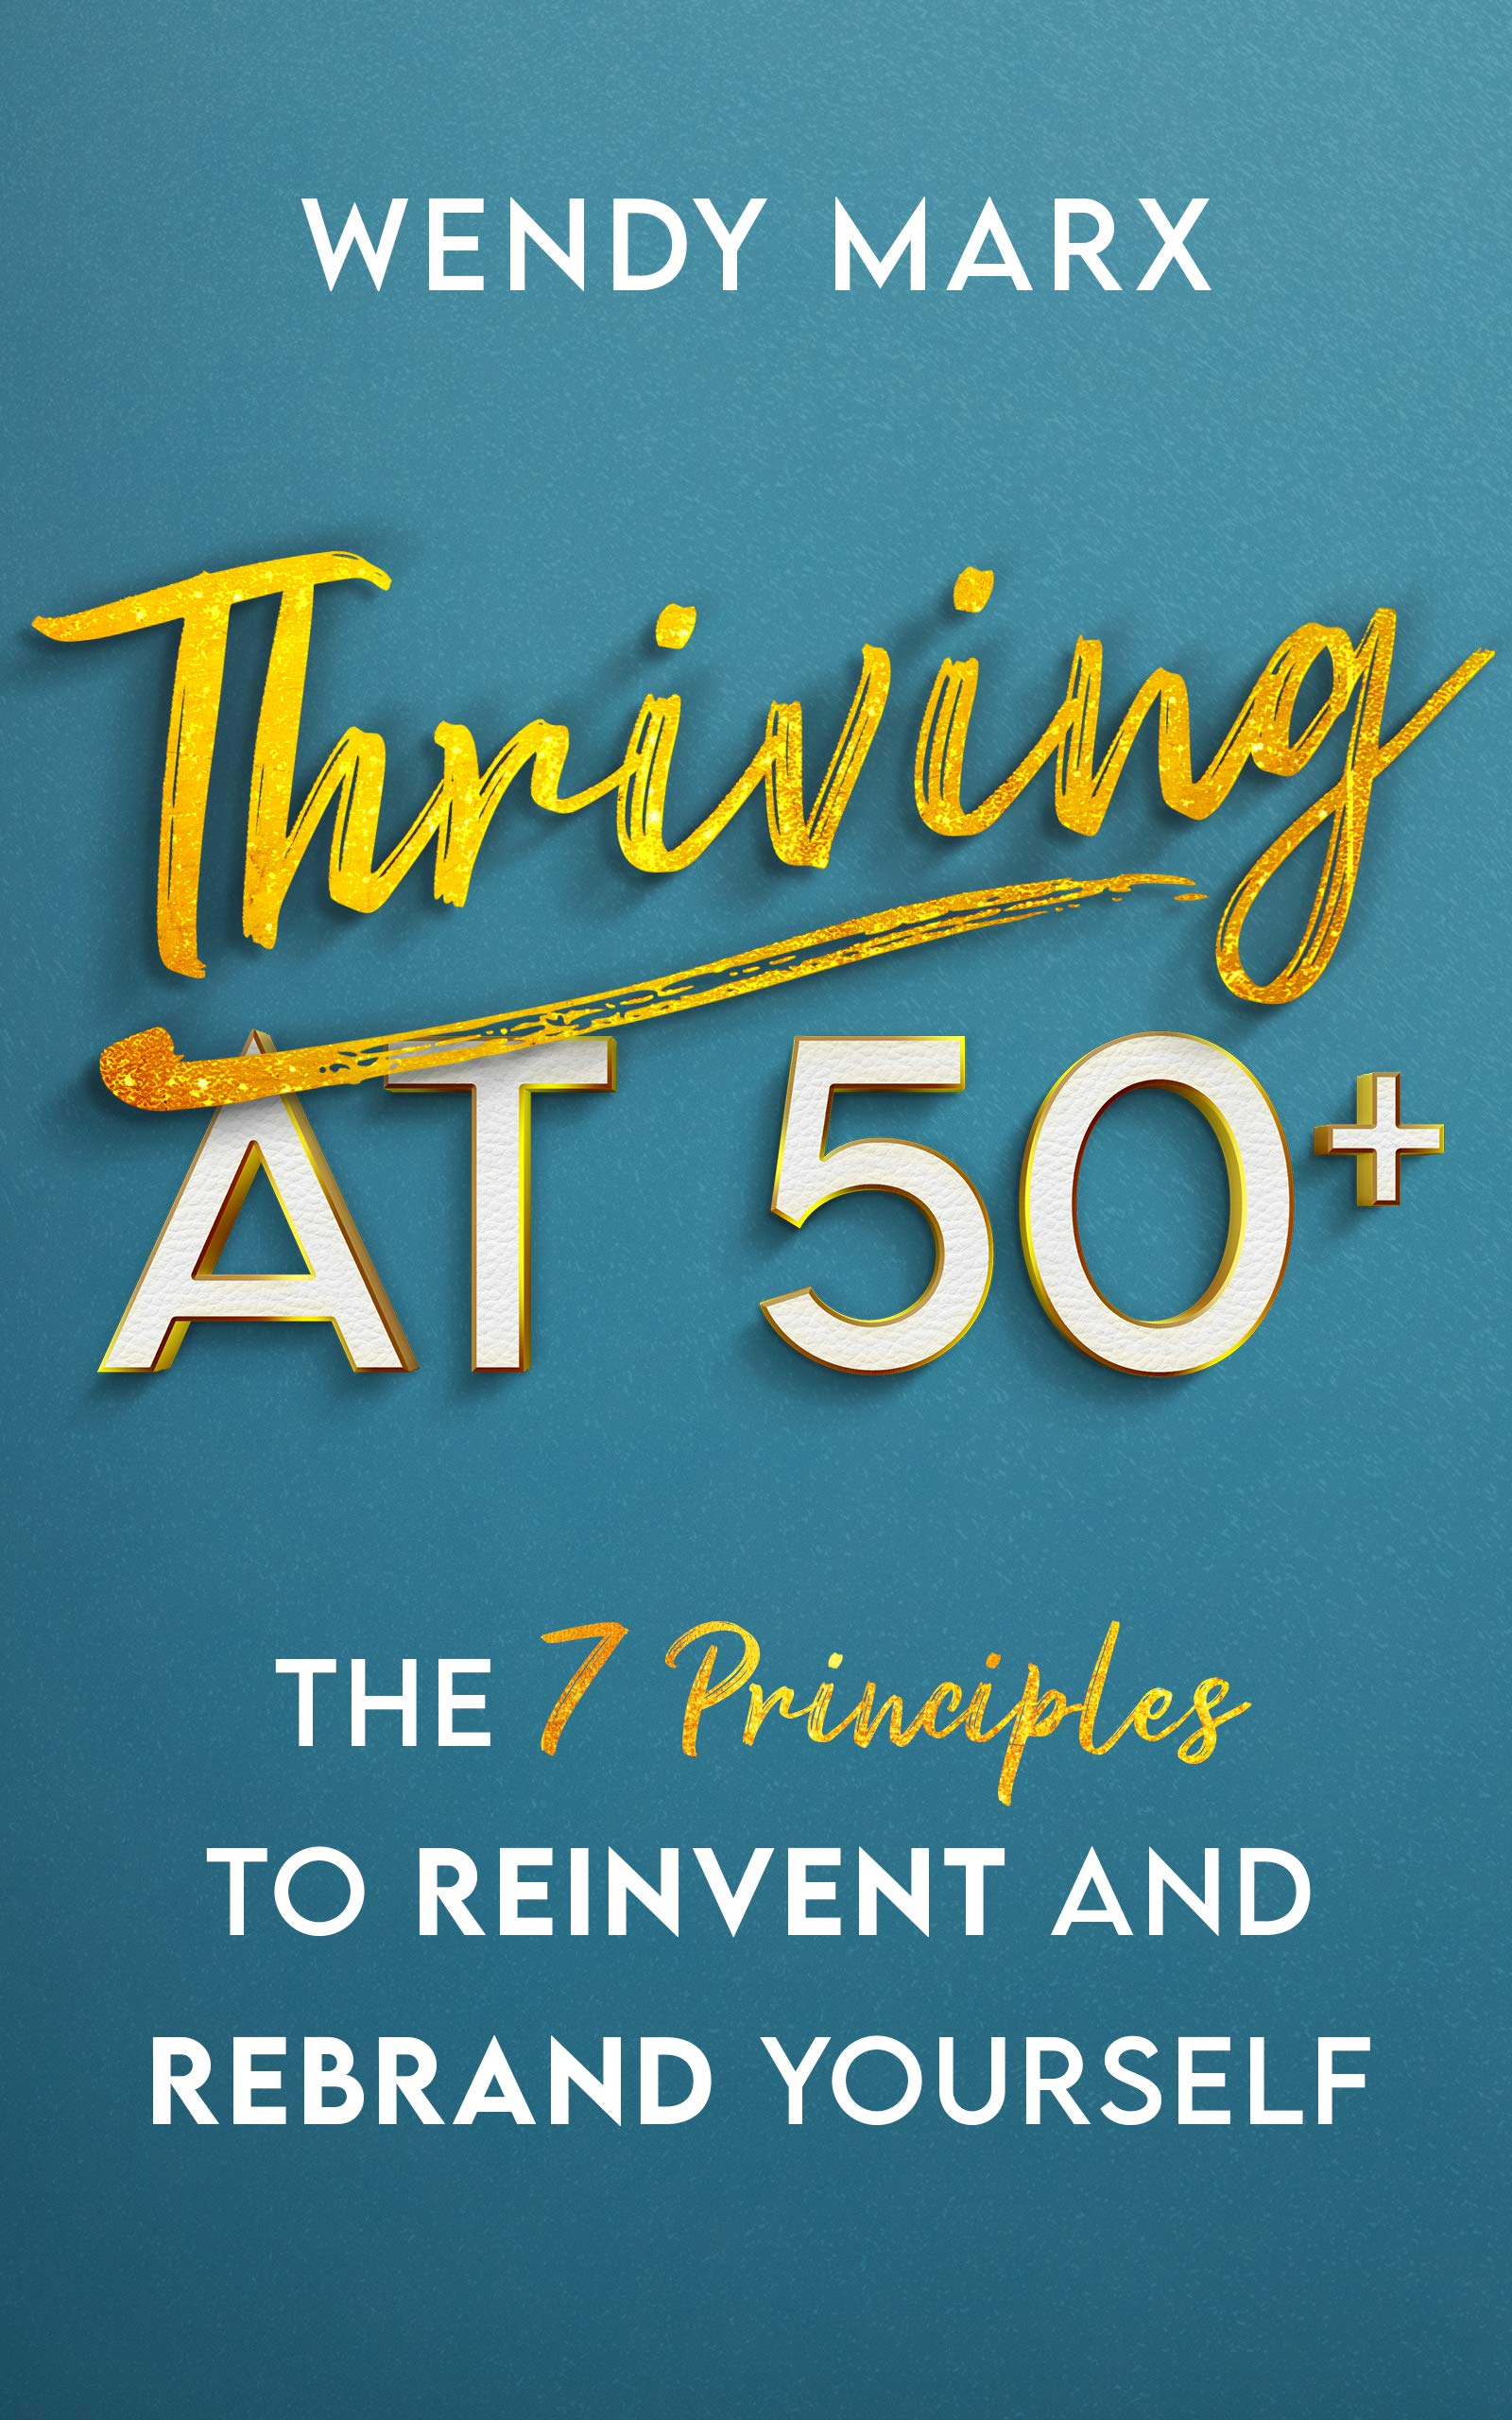 Thriving at 50+: The 7 Principles to Reinvent and Rebrand Yourself